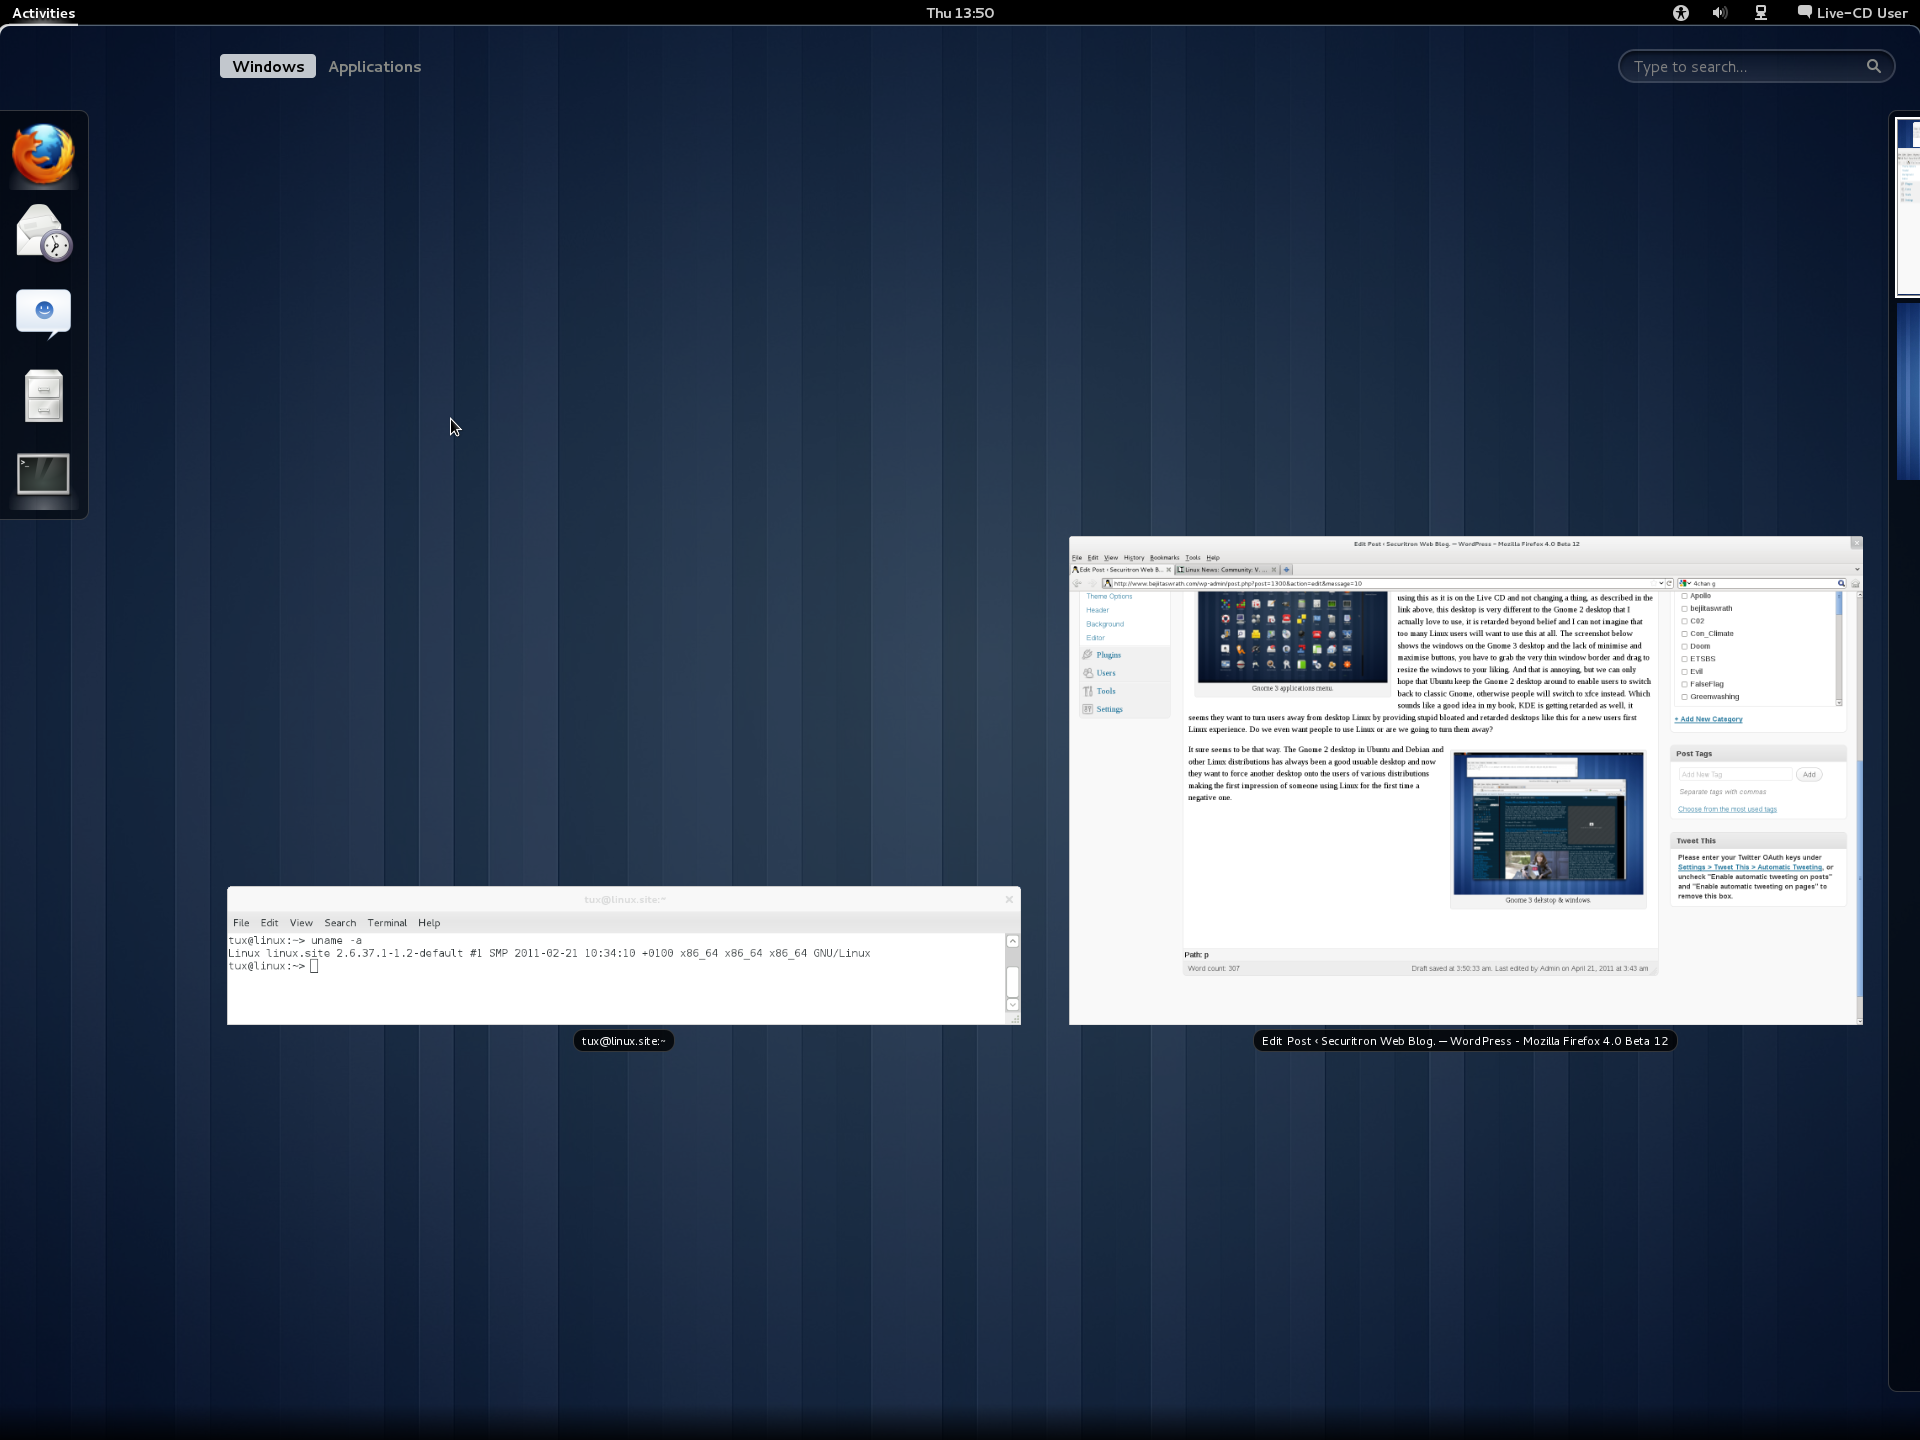 Gnome 3 activities view.